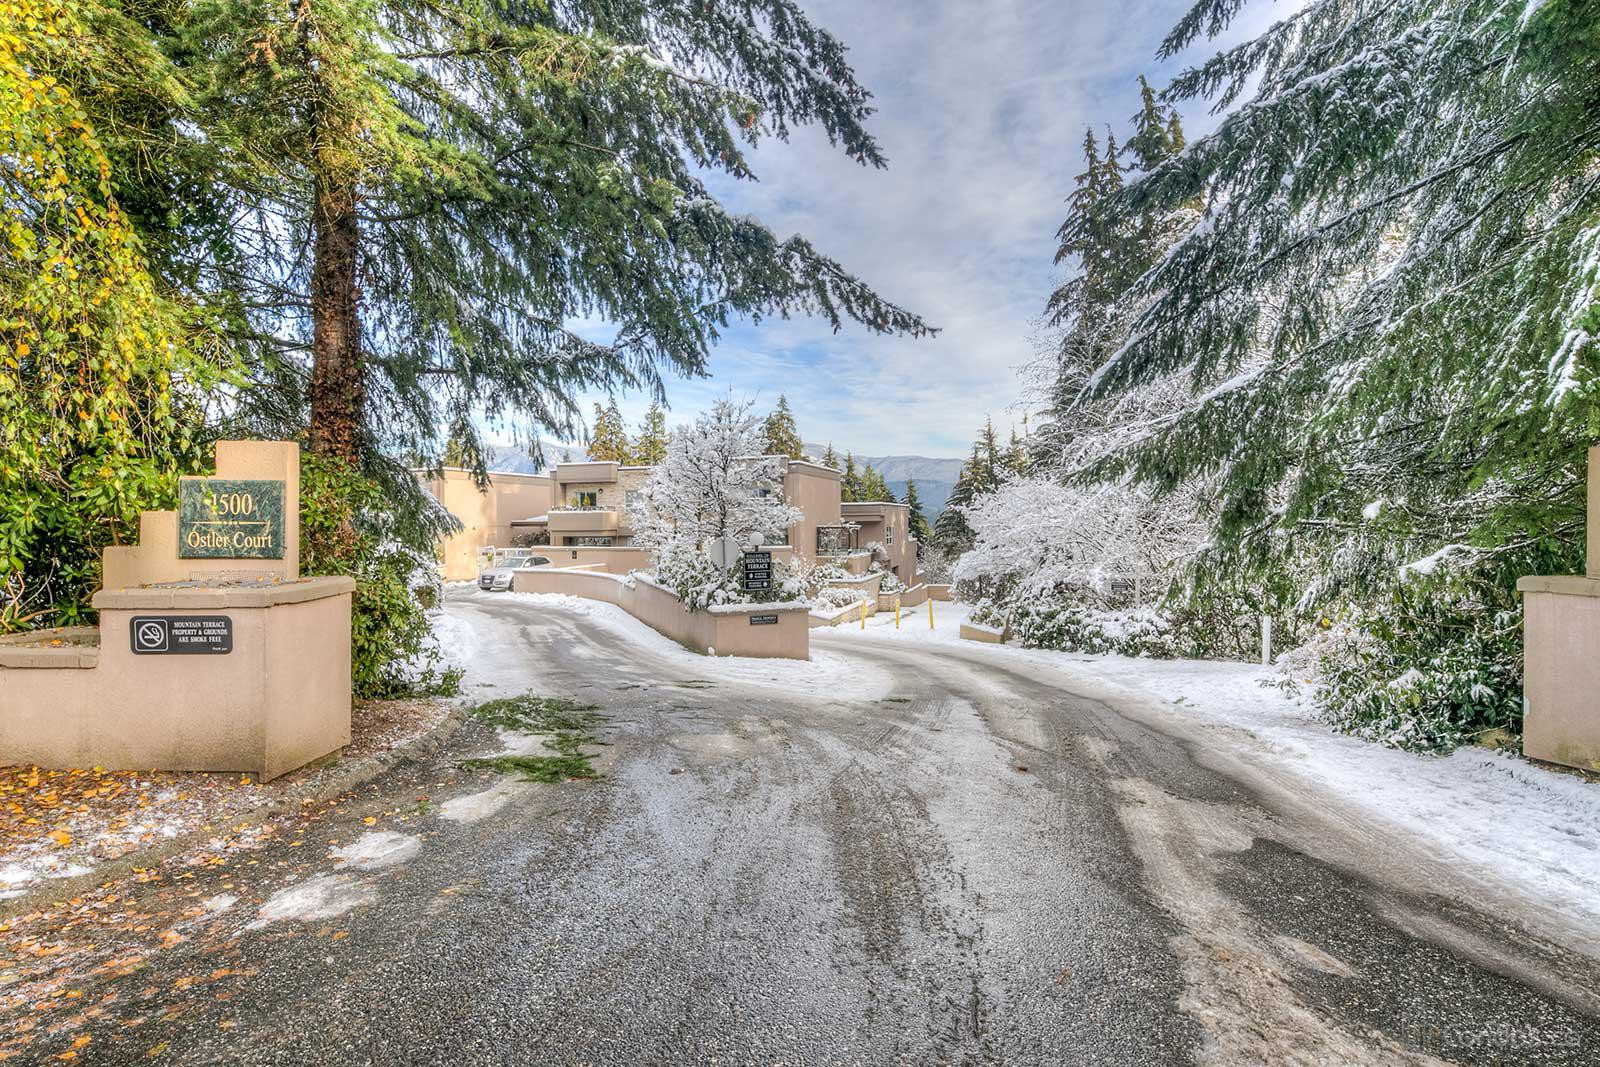 Mountain Terrace at 1500 Ostler Crt, North Vancouver District 0